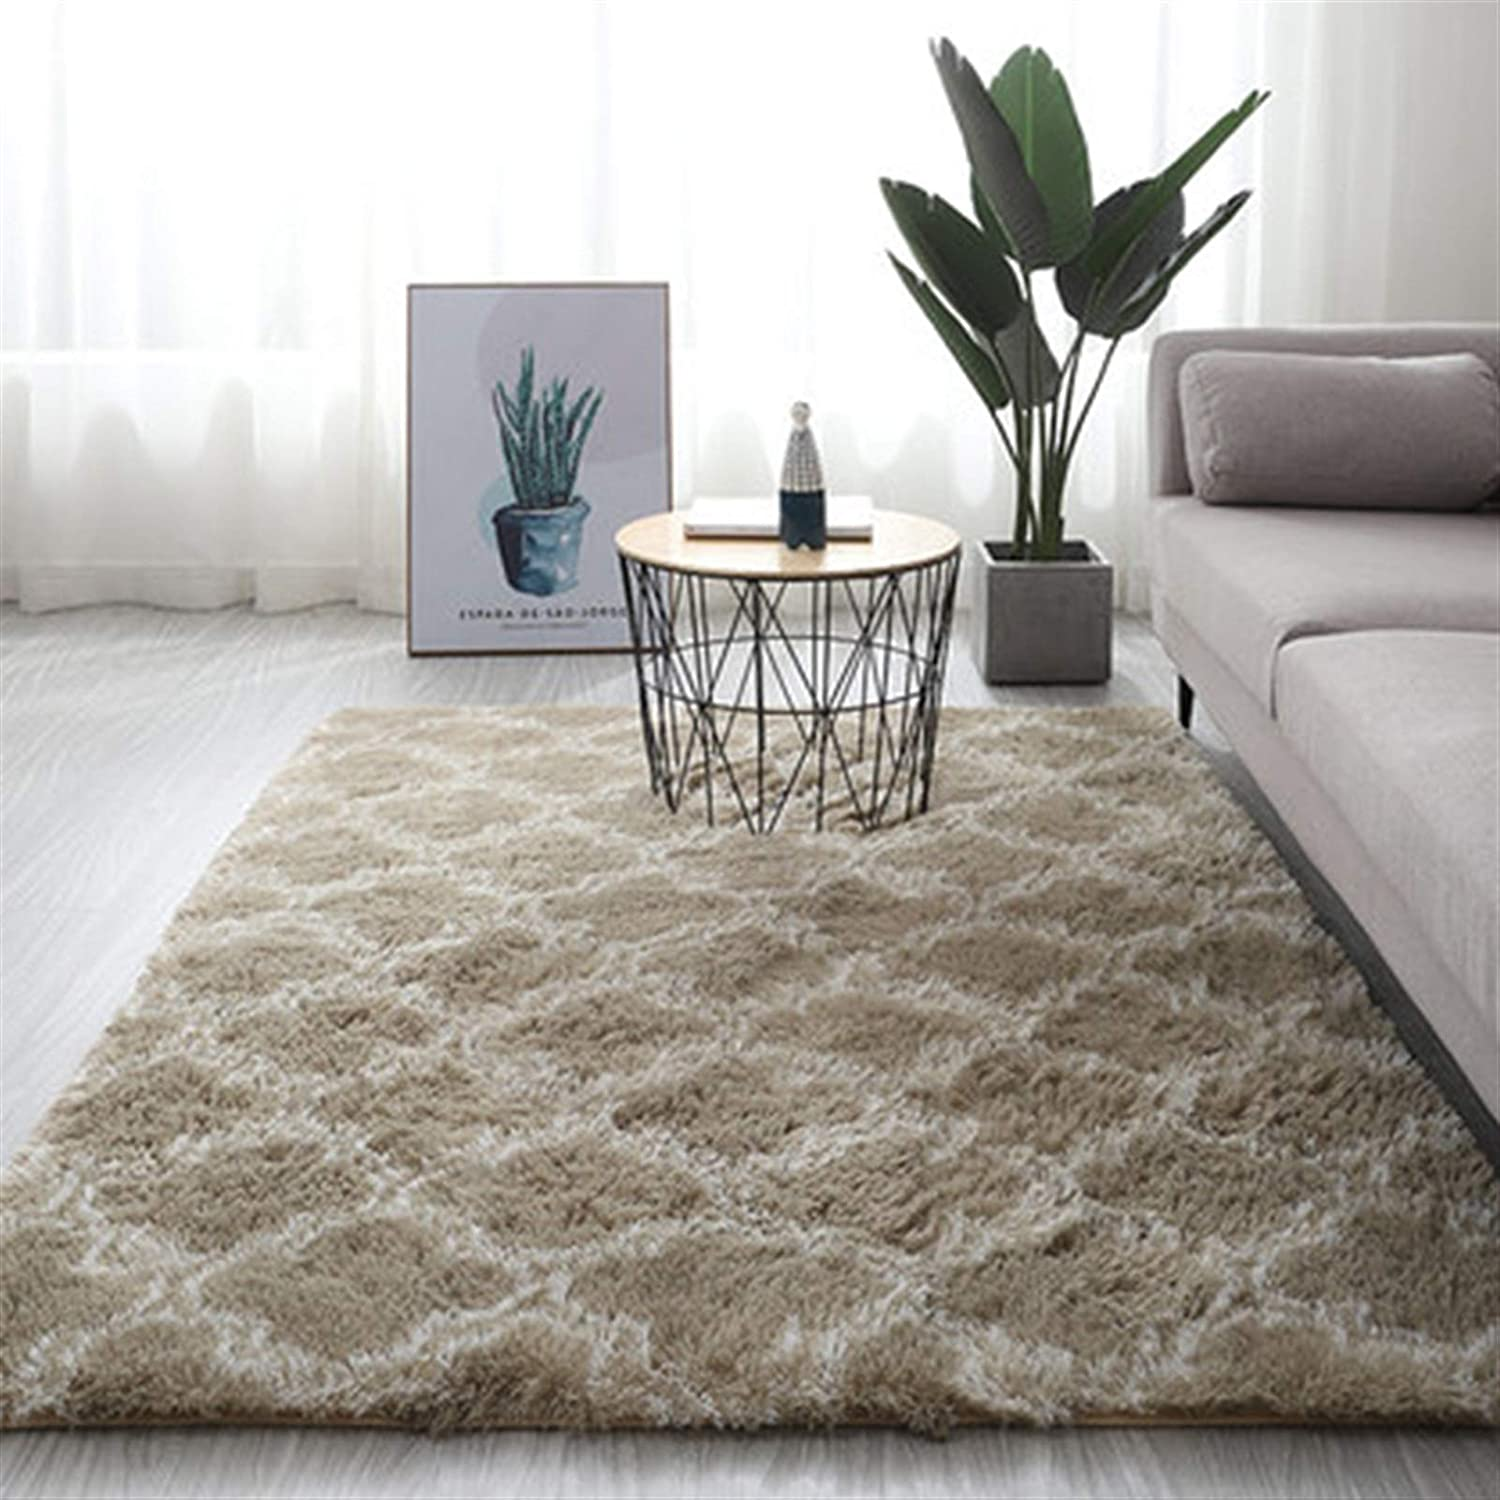 General-purpose Free 100% quality warranty! shipping on posting reviews carpets in various styles Liv Long hair fashion